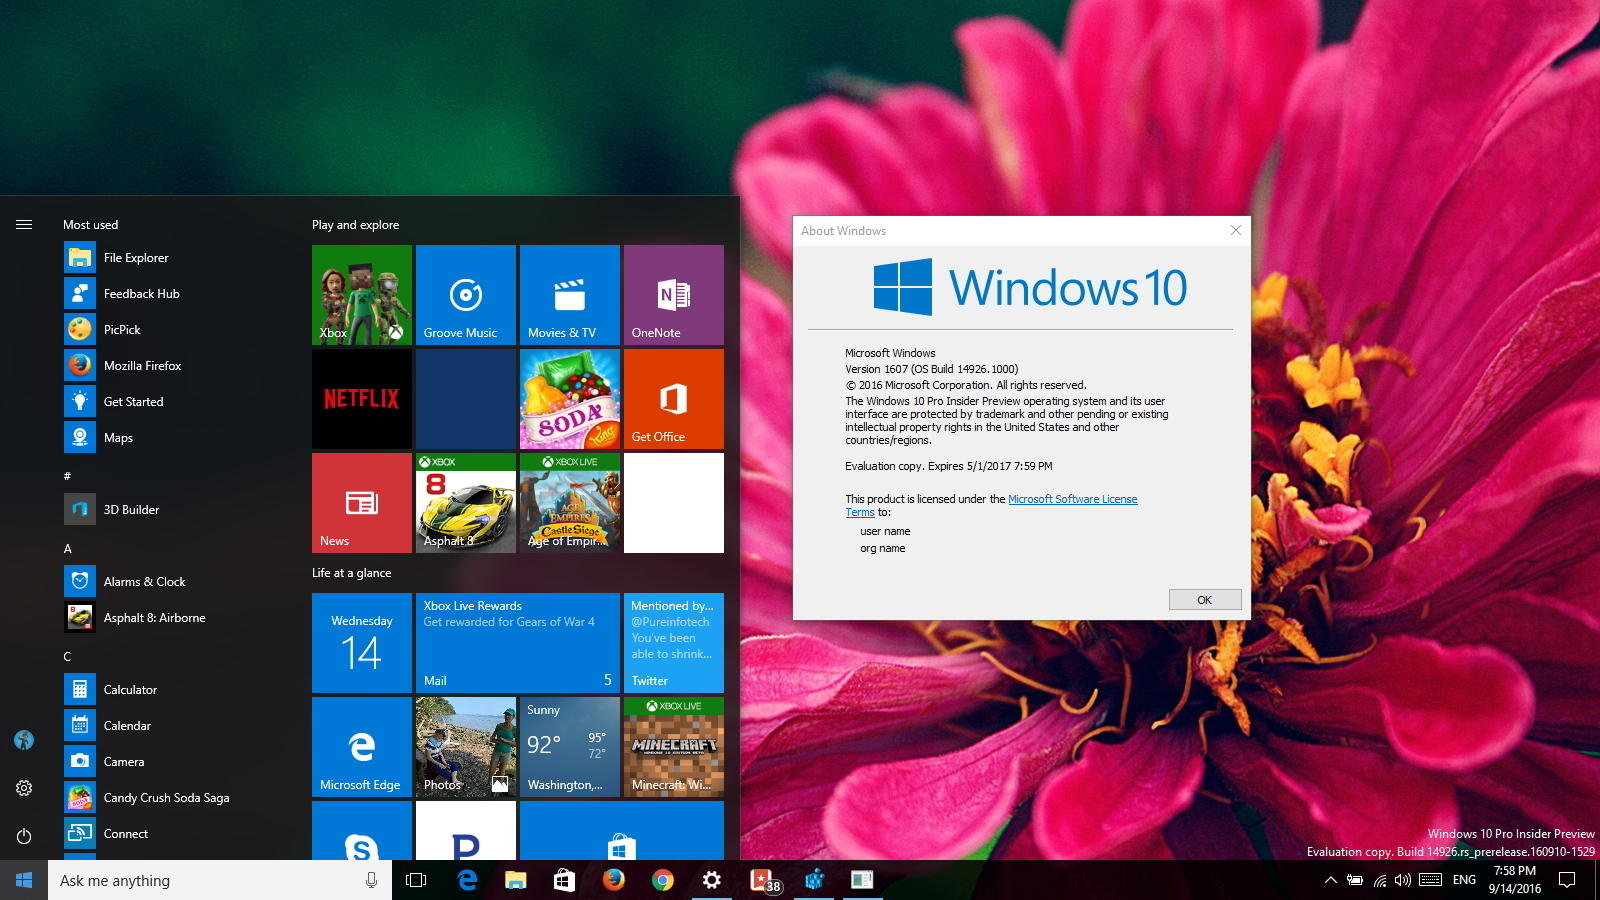 Windows 10 build 14926